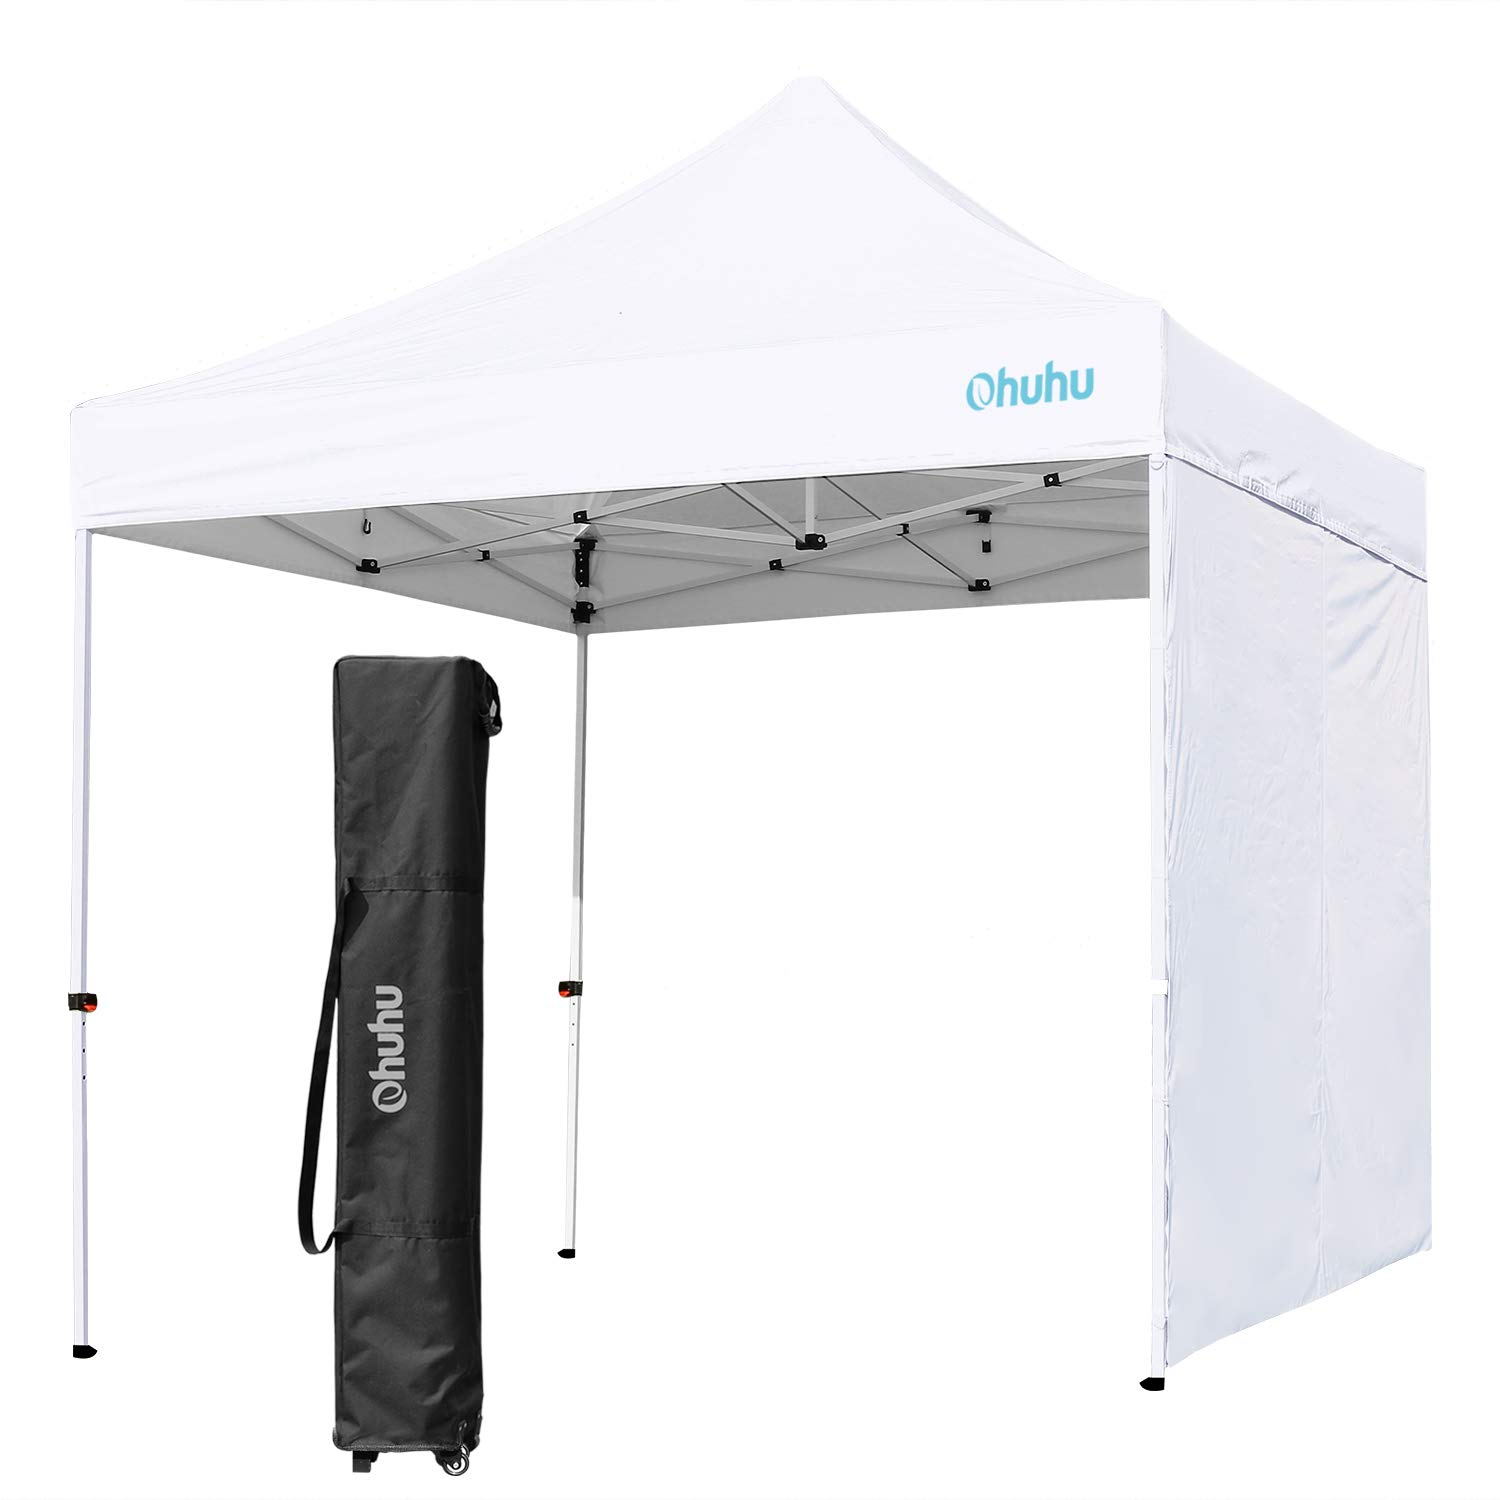 Ohuhu 10 X 10 FT Easy Pop-Up Canopy Tent with Sidewall, 4 Adjustable Height Wheeled Carrying Bag, White